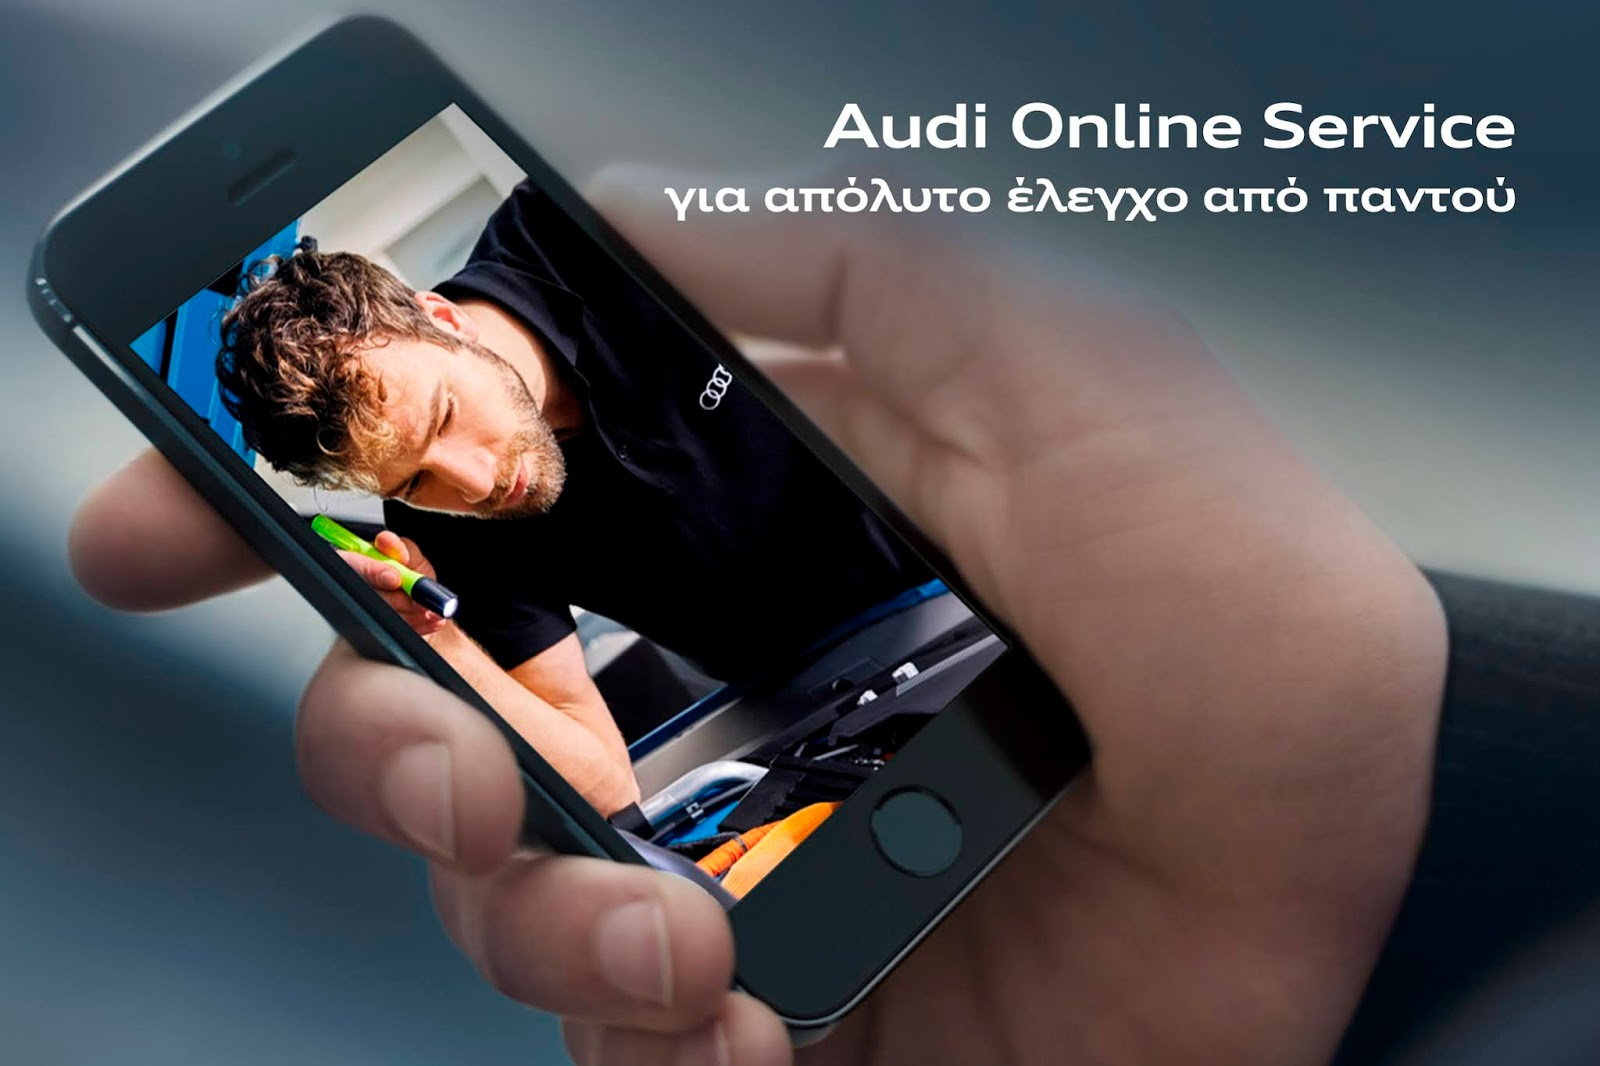 """AUDI2BAFTER2BSALES Online2BService Πακέτα service """"Smart Packs"""" και ψηφιακές After Sales υπηρεσίες από την Audi"""